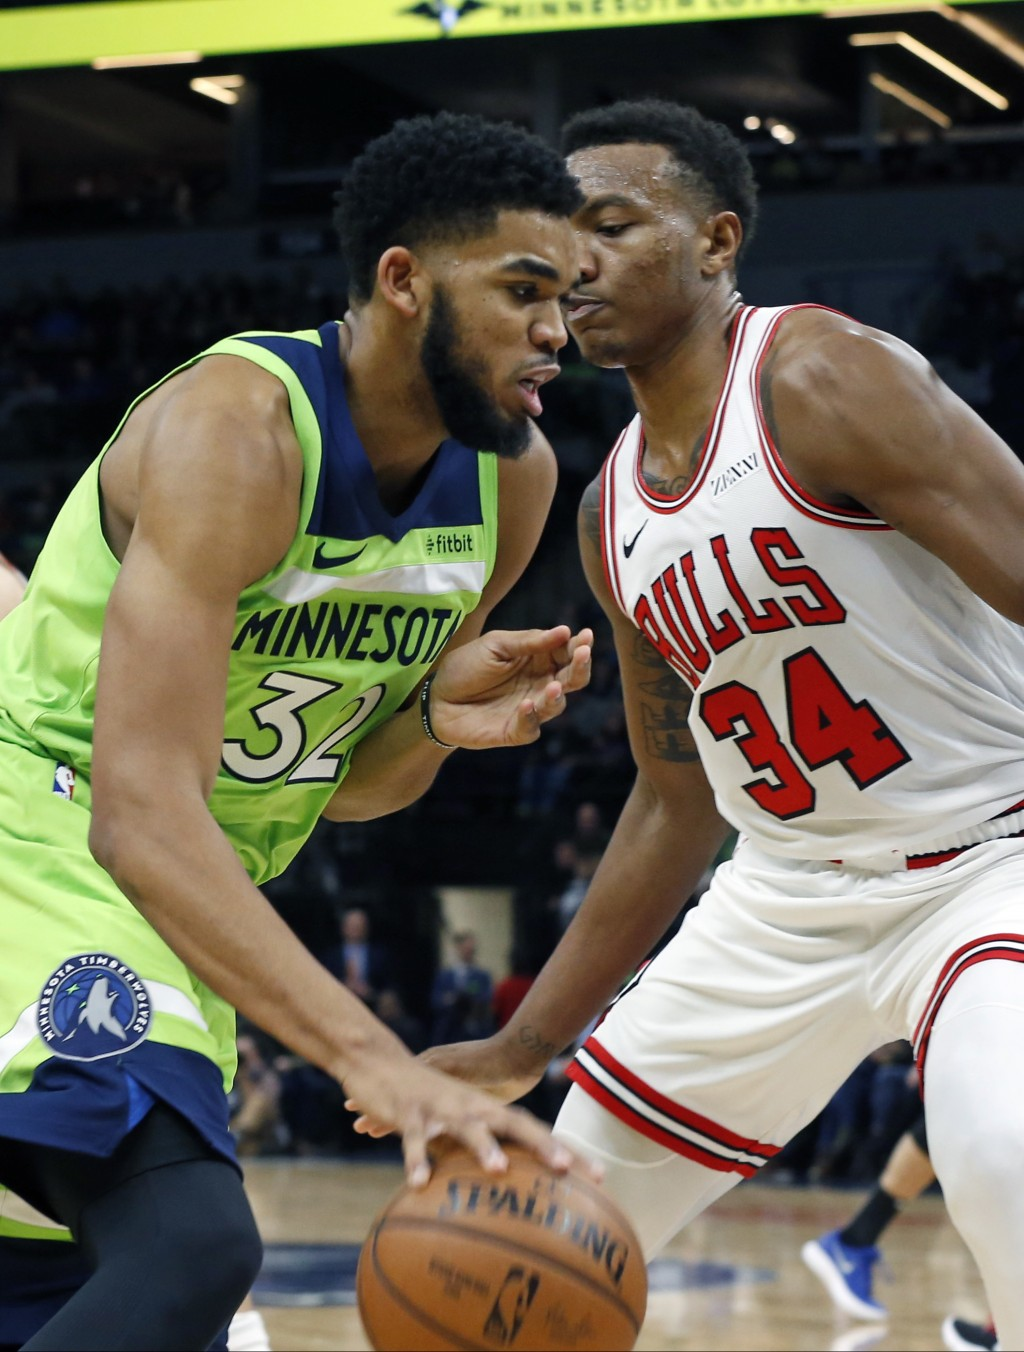 Minnesota Timberwolves' Karl-Anthony Towns, left, drives as Chicago Bulls' Wendell Carter Jr. defends in the first half of an NBA basketball game Satu...